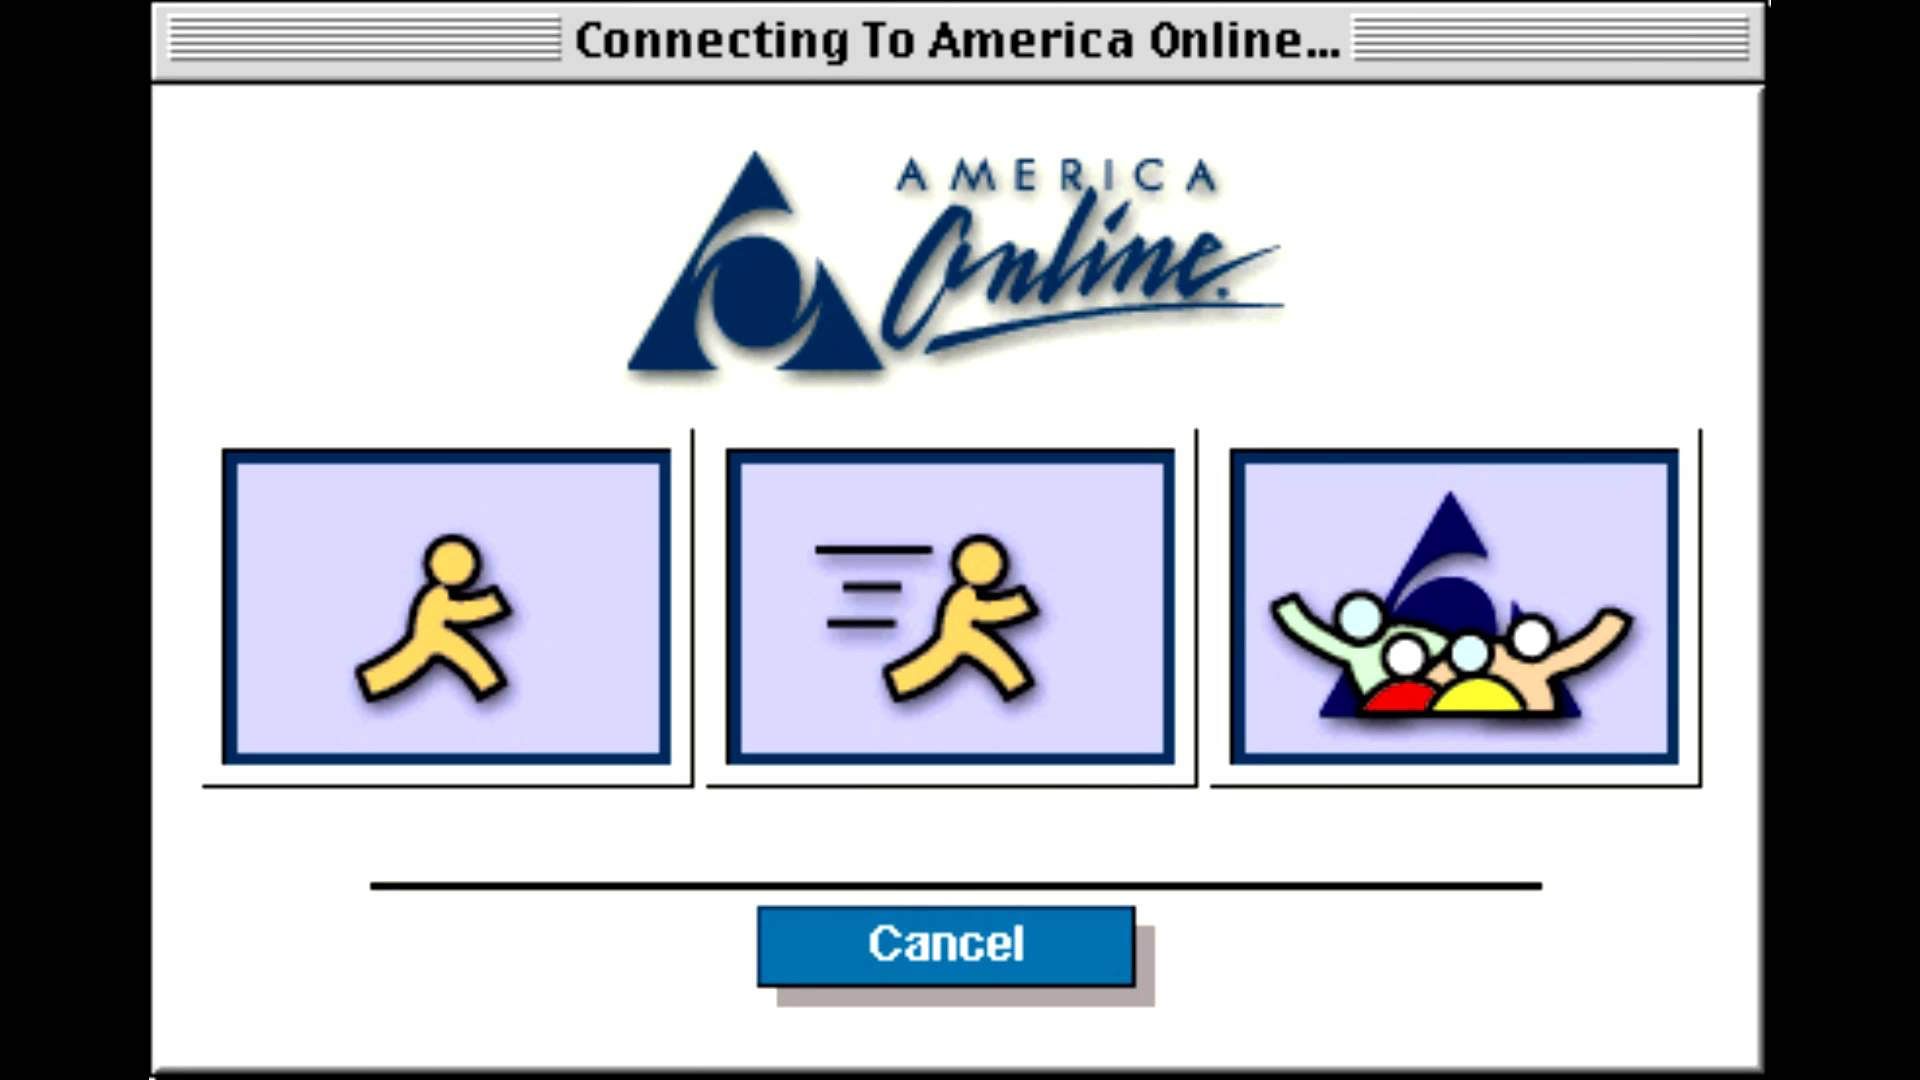 ab64e7d0-0351-11e6-9667-41de50e9bb65_aol-dial-up